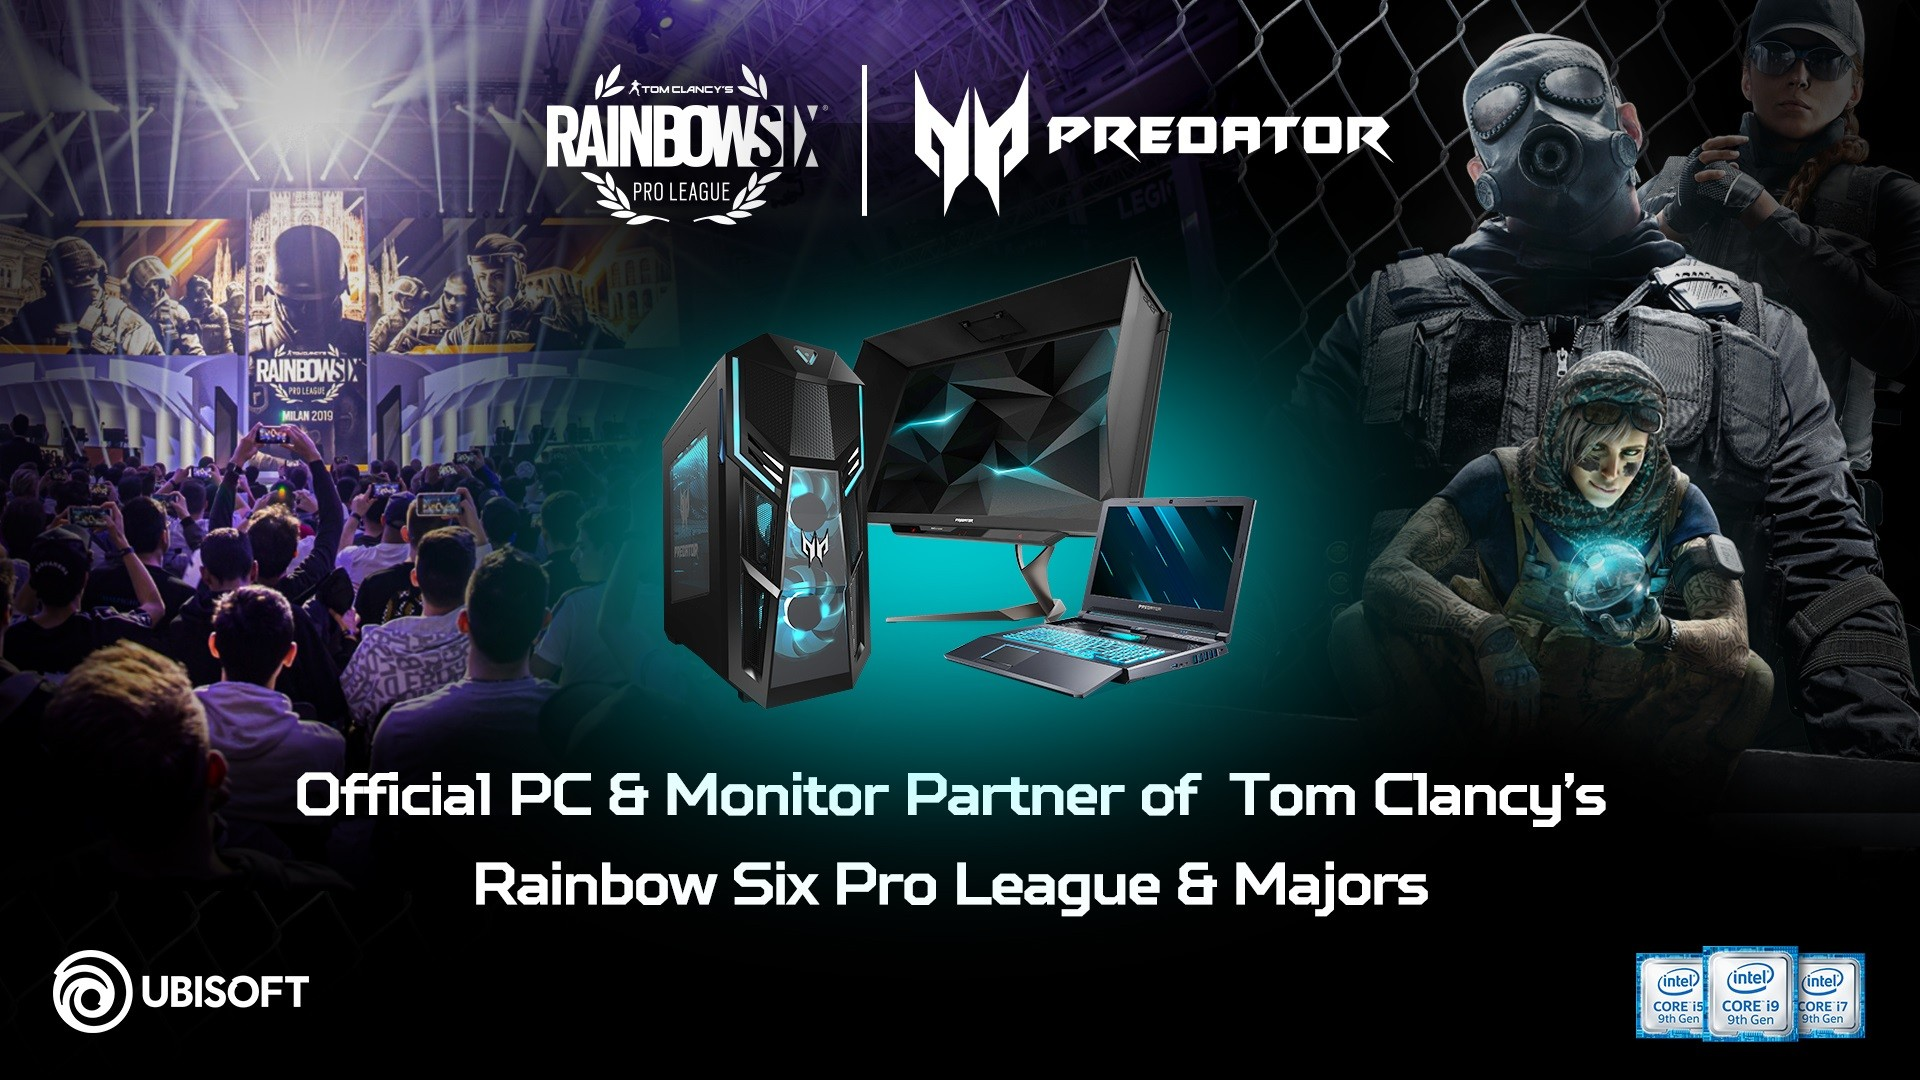 Rainbow Six Pro League Stagione X Powered by Predator